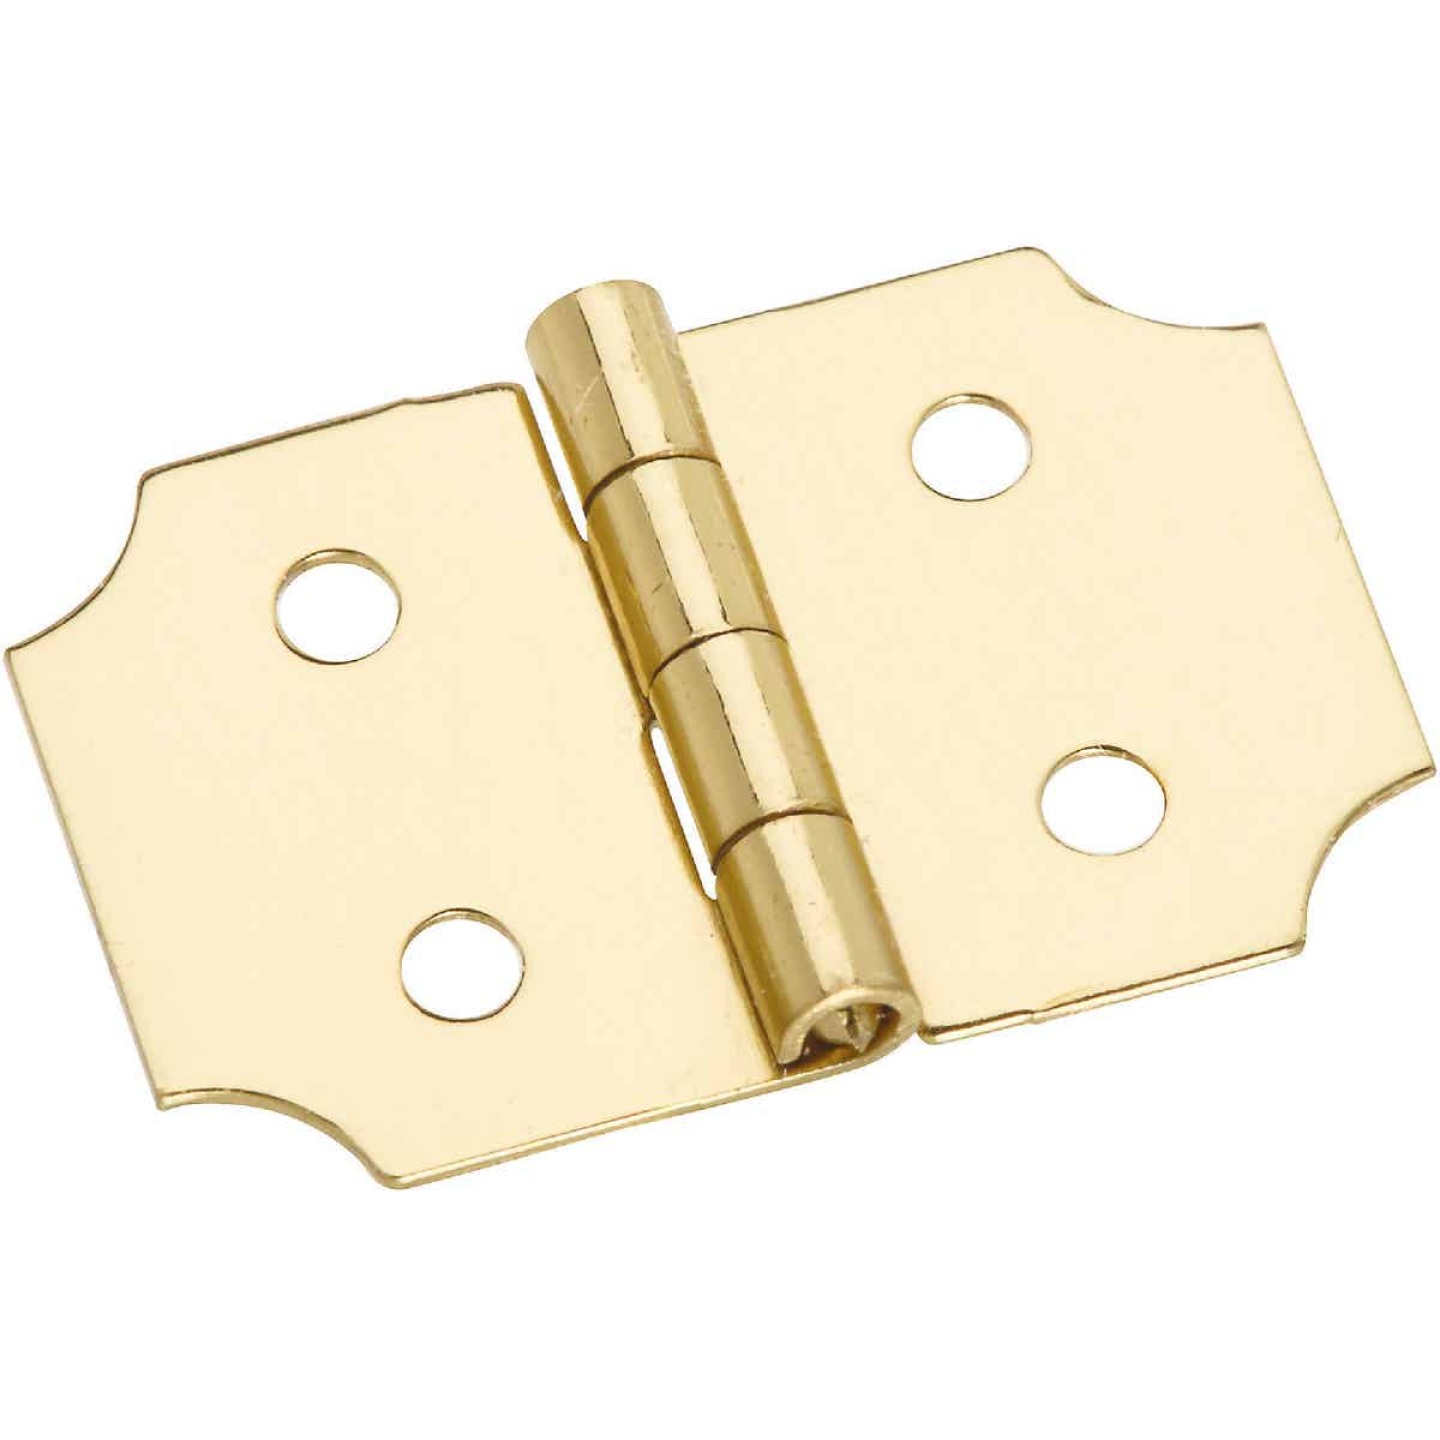 National 5/8 In. x 1 In. Brass Decorative Hinge (2-Pack) Image 1